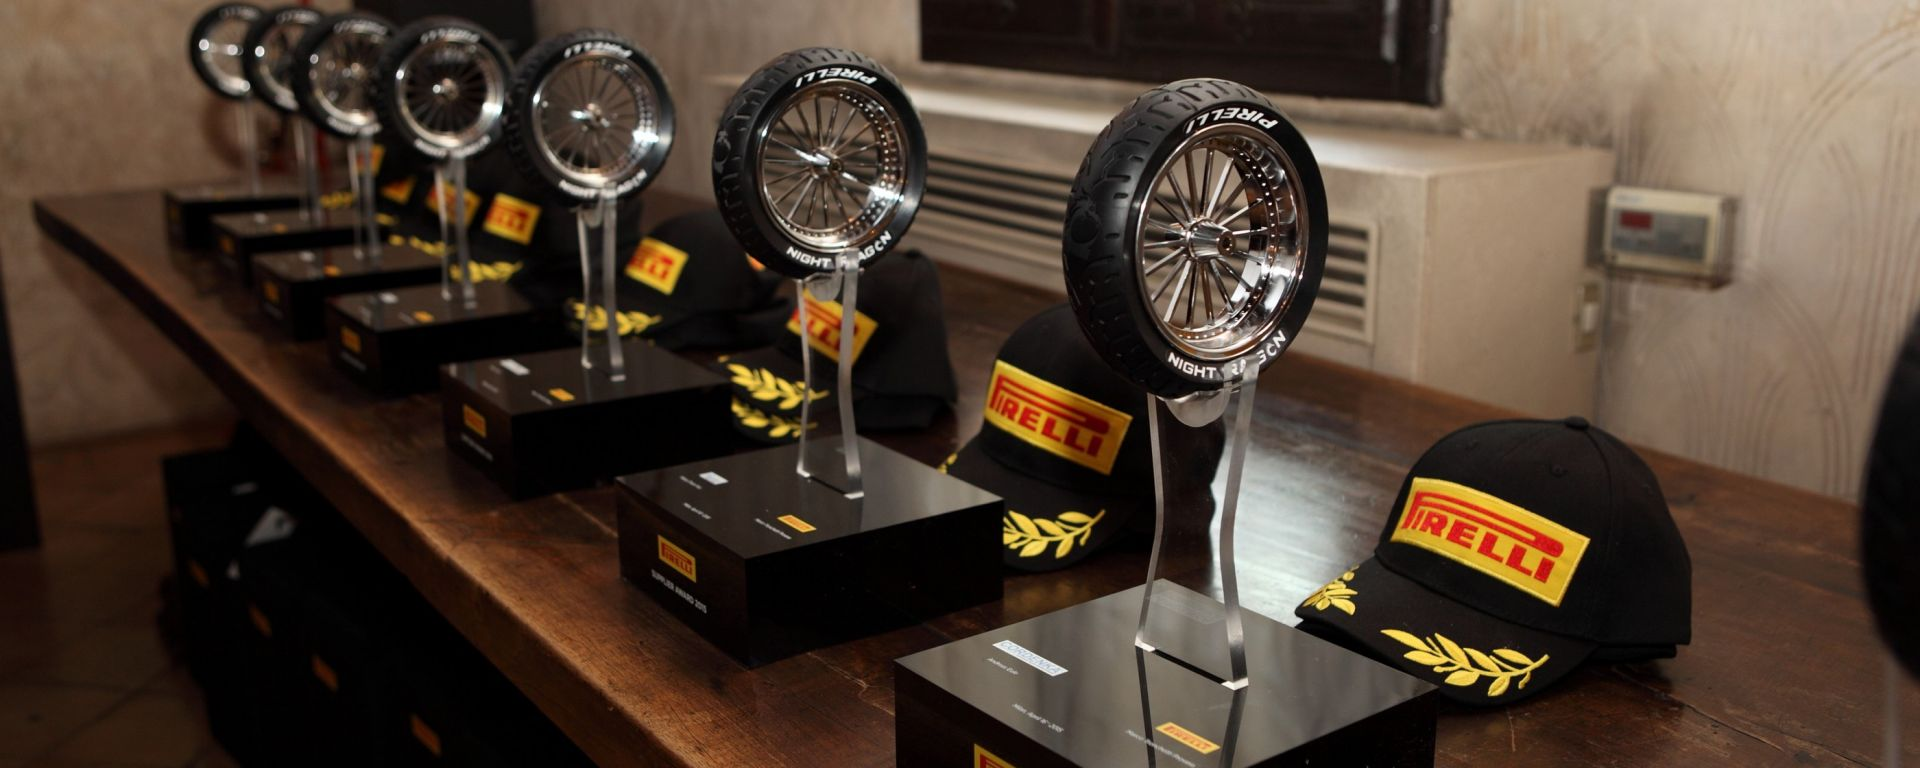 Pirelli Supplier Award 2015